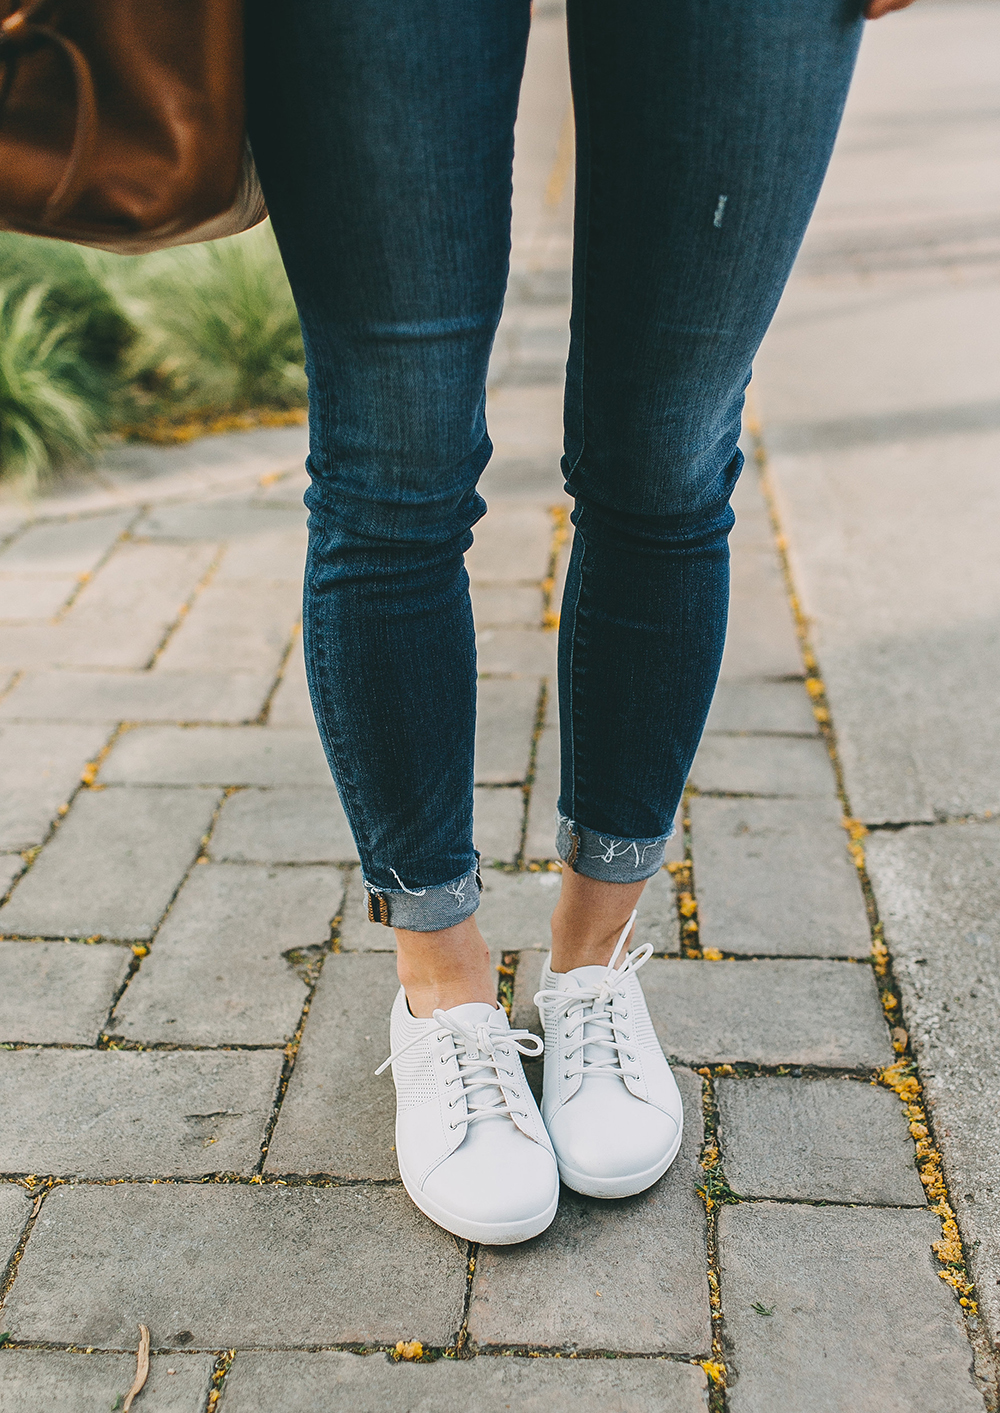 livvyland-blog-olivia-watson-fit-flop-white-leather-sneakers-outfit-6